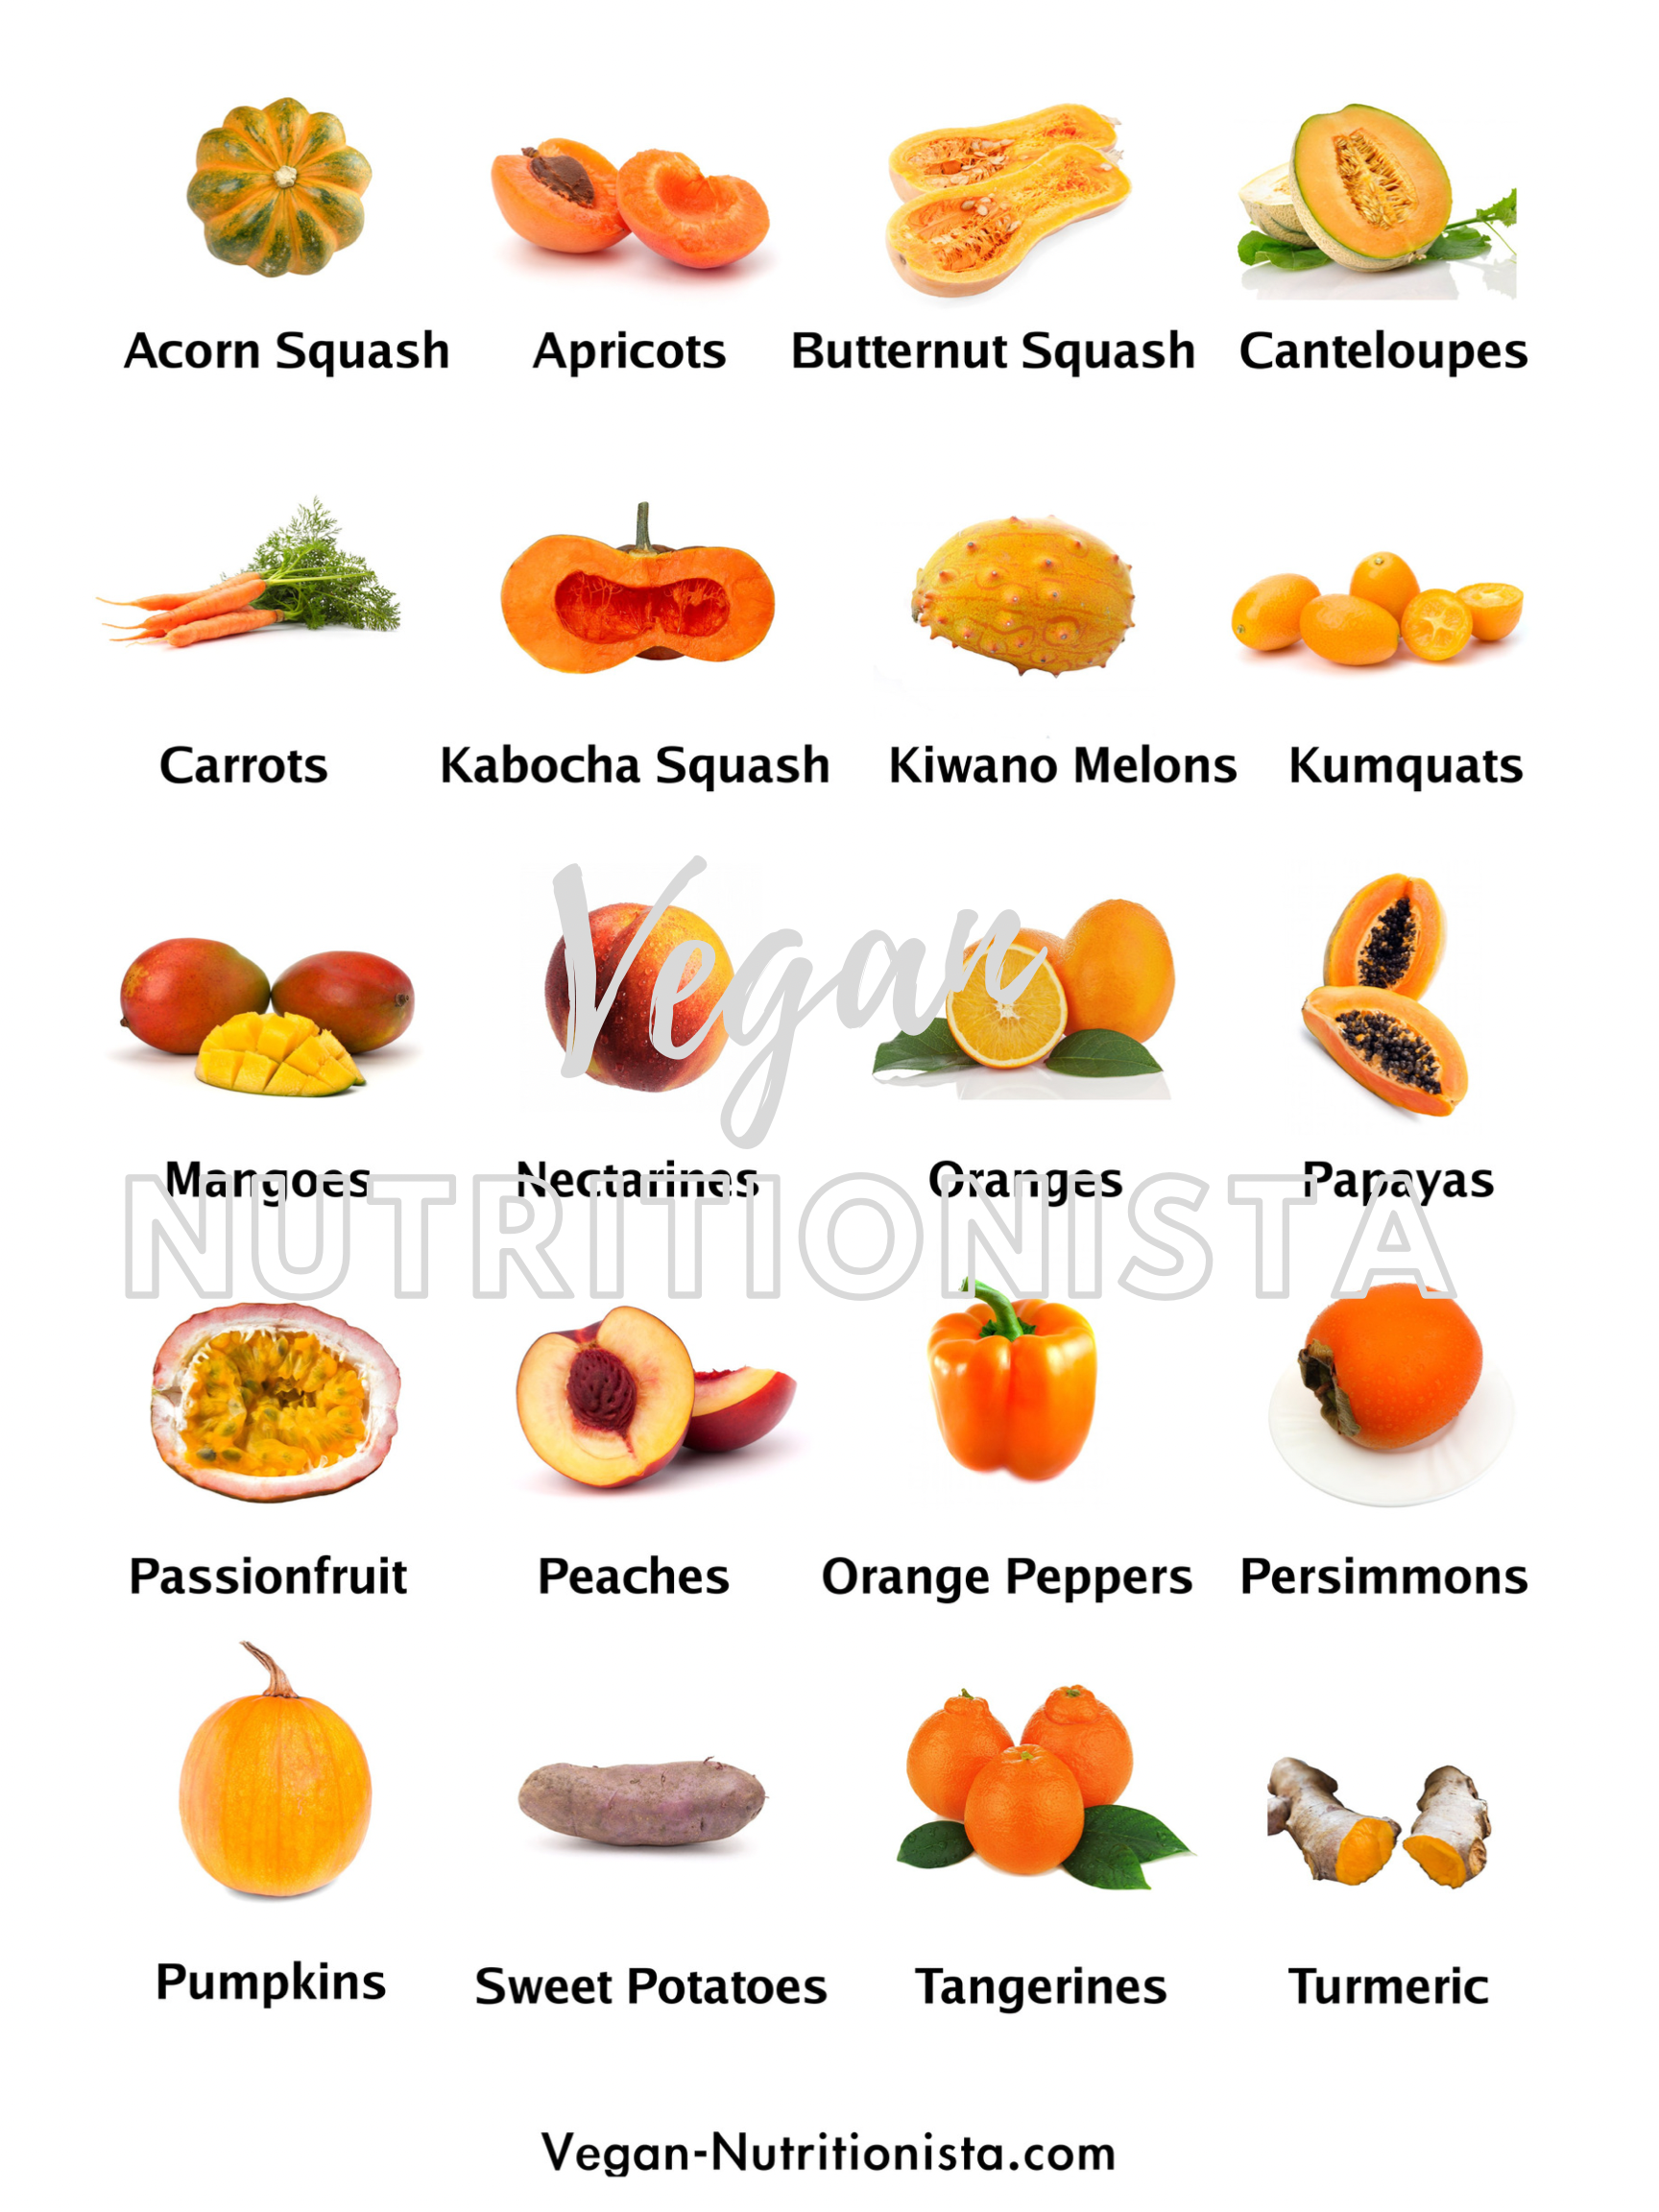 A picture showing the orange fruits and vegetables